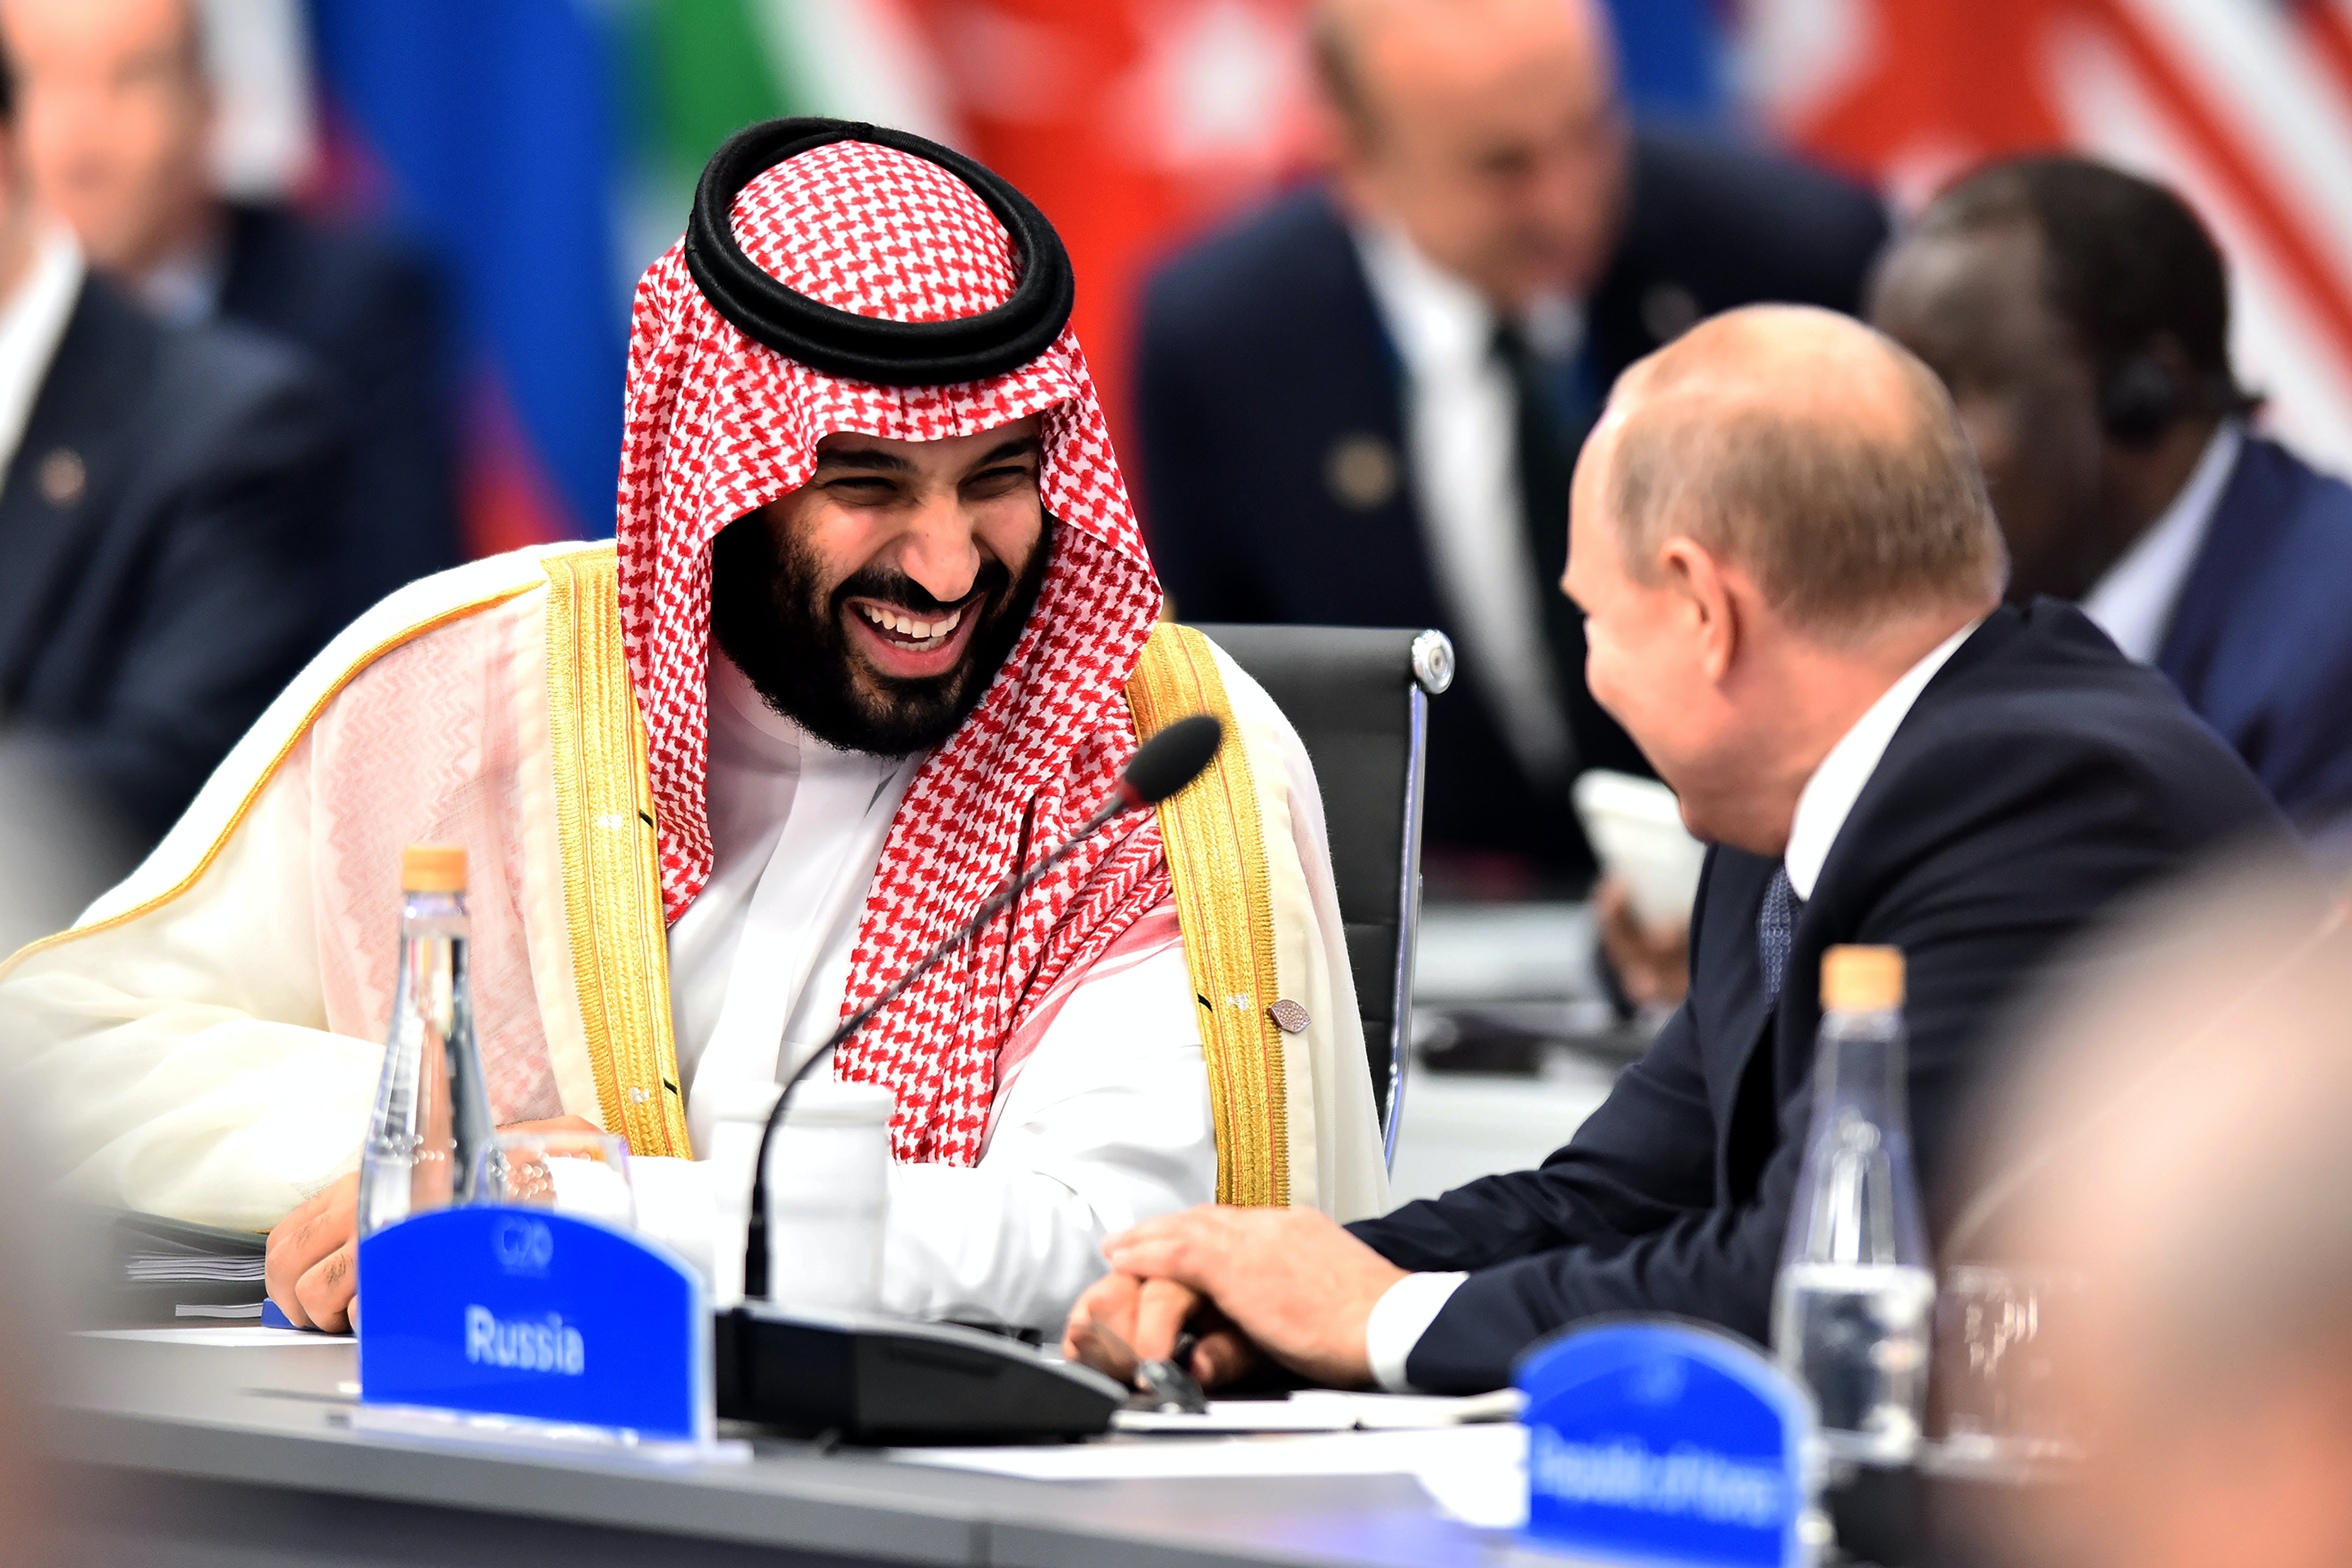 Image result for image of putin high five with MBS